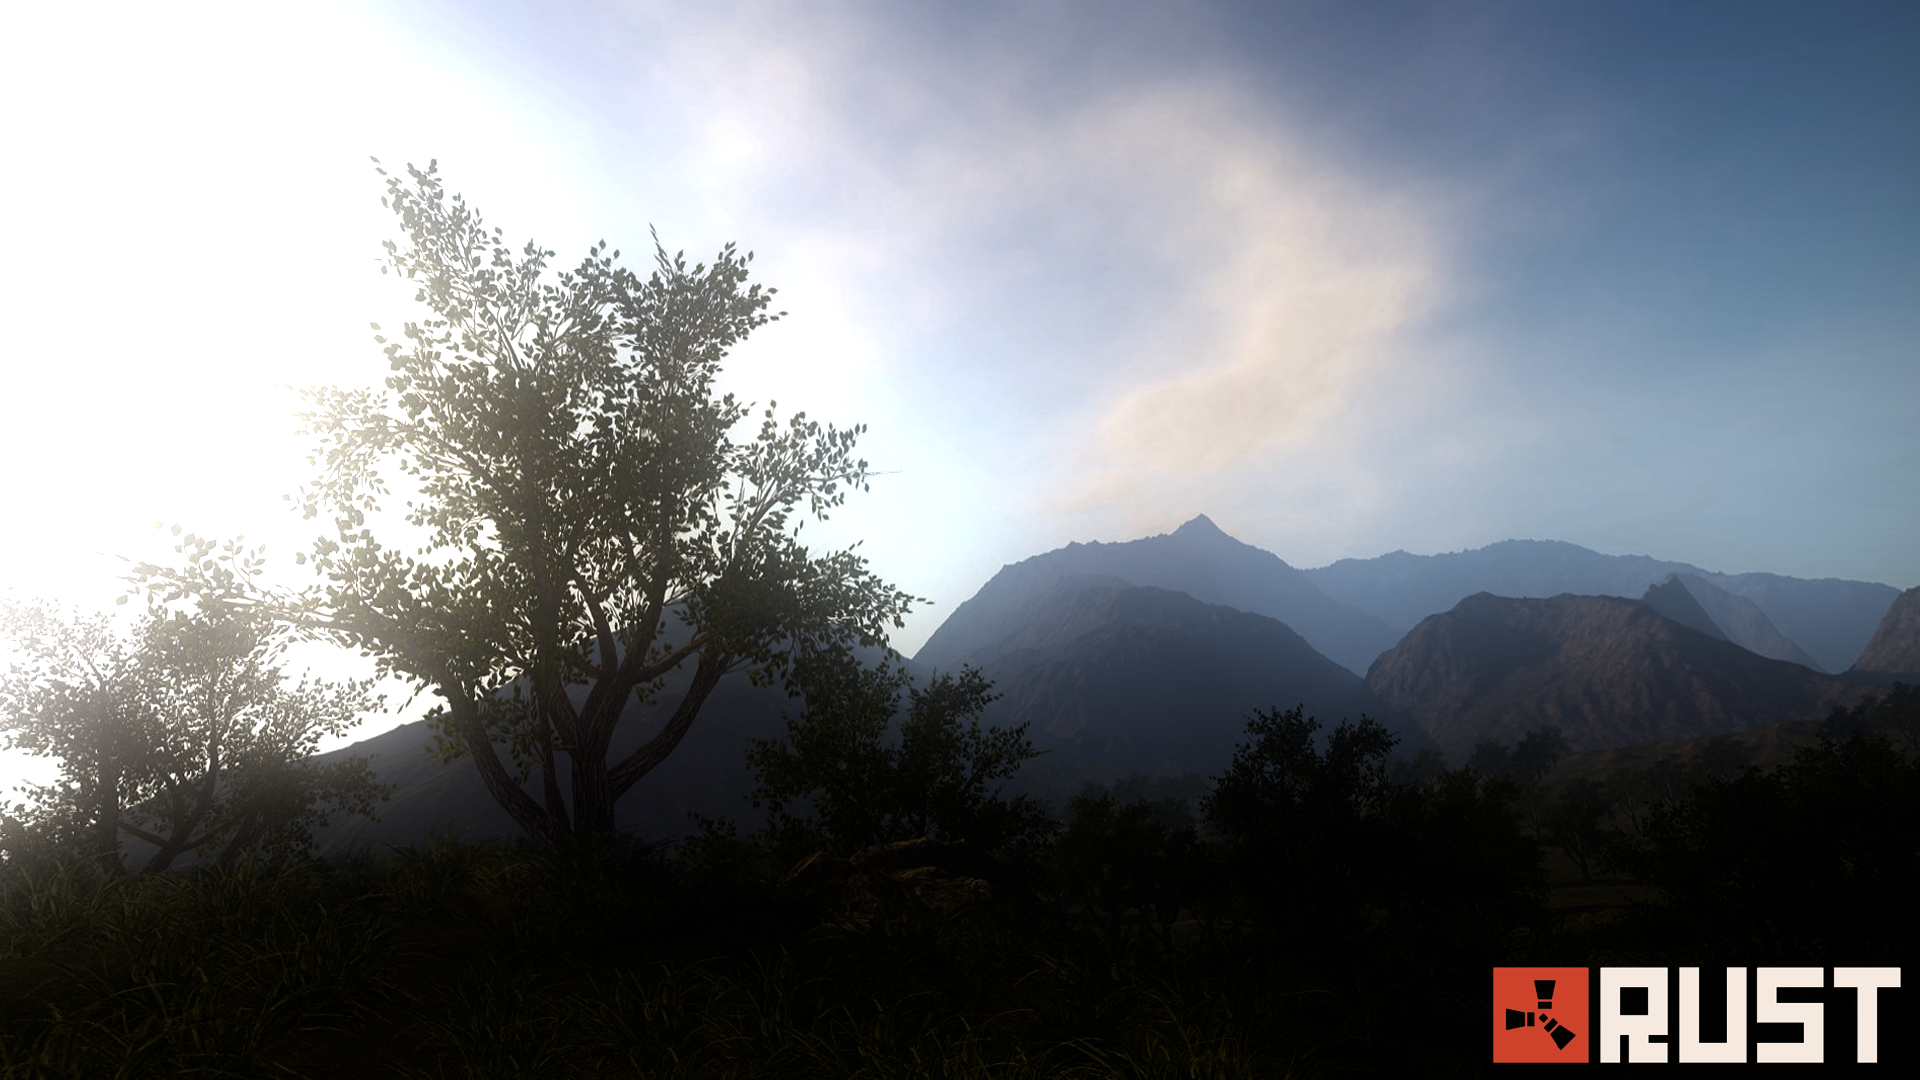 Rust Game Wallpapers - Top Free Rust